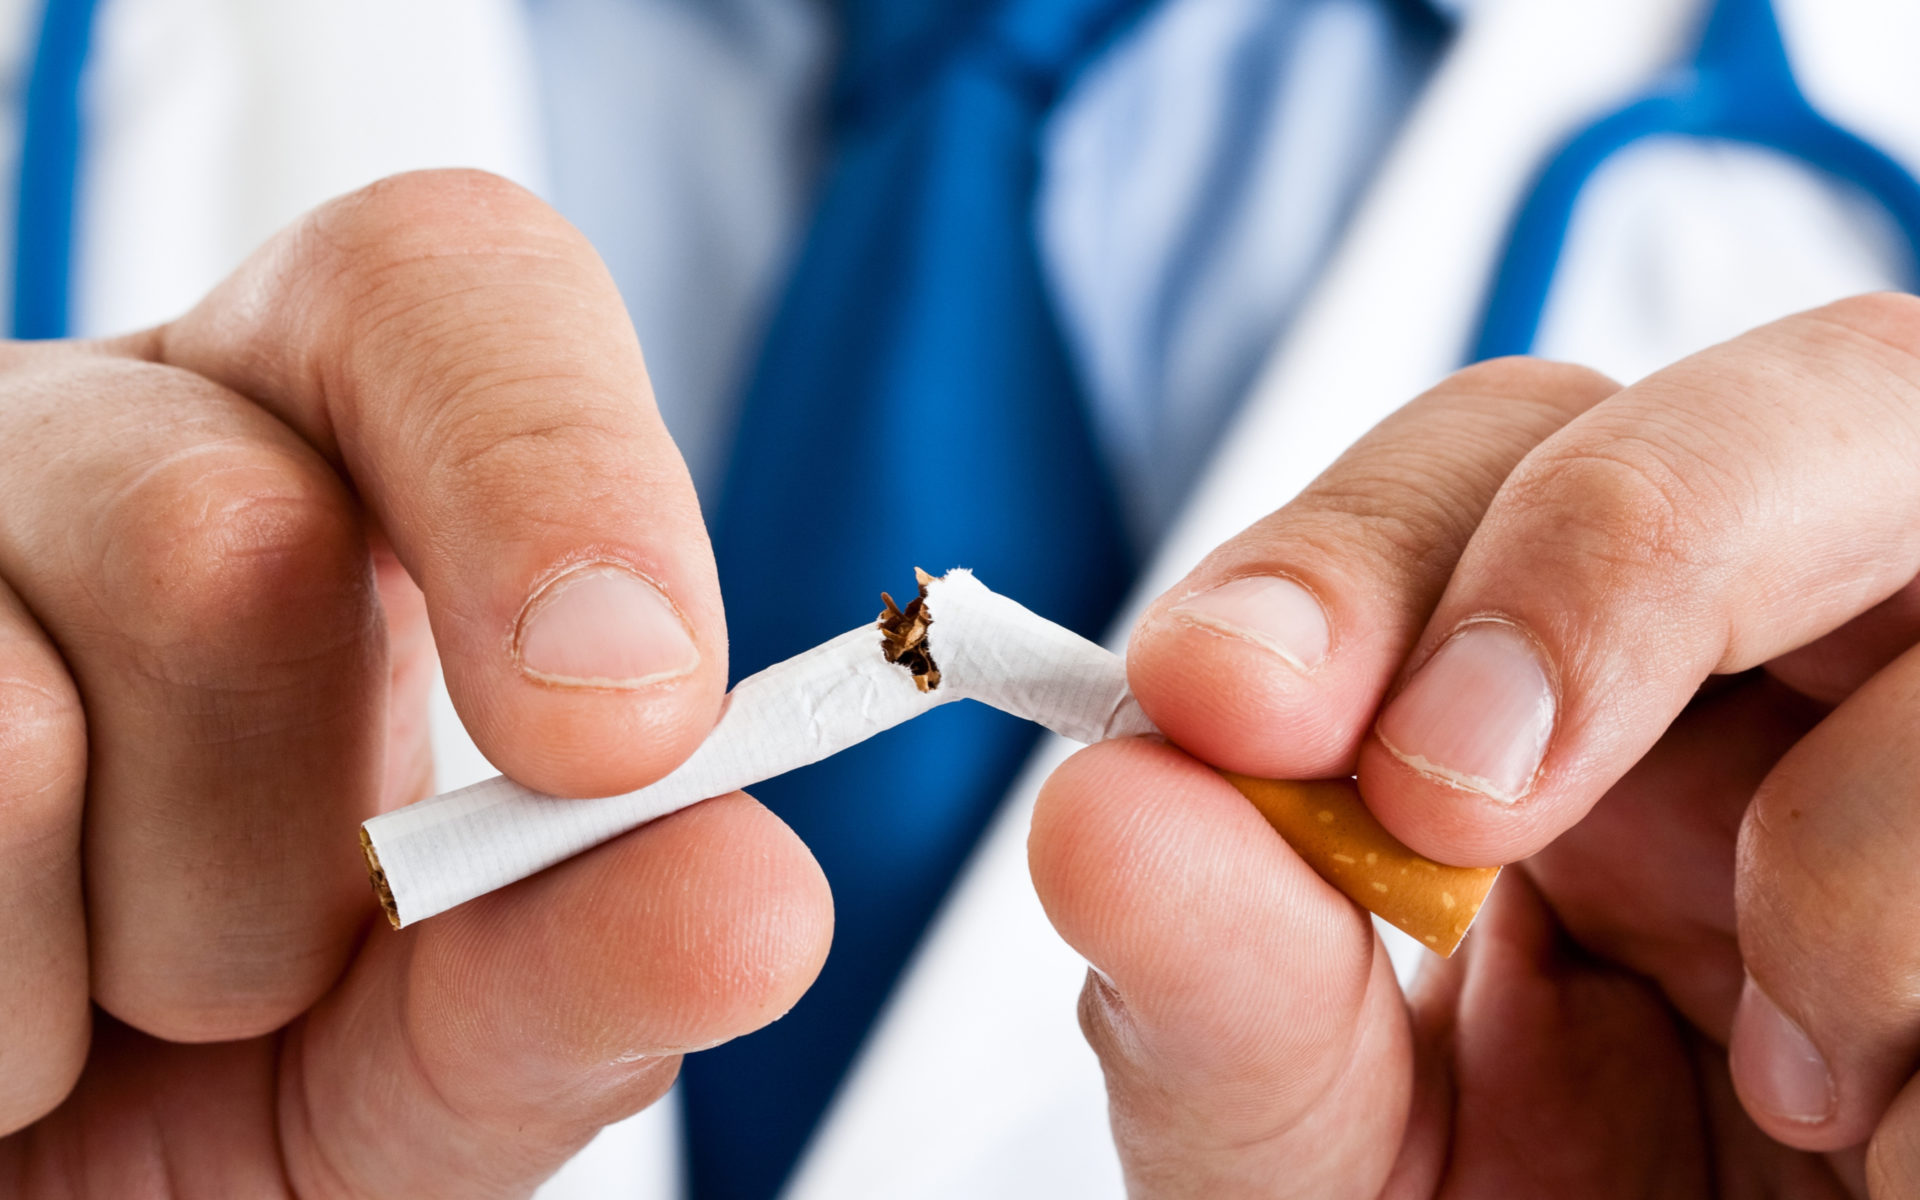 Smoking can damage your vision